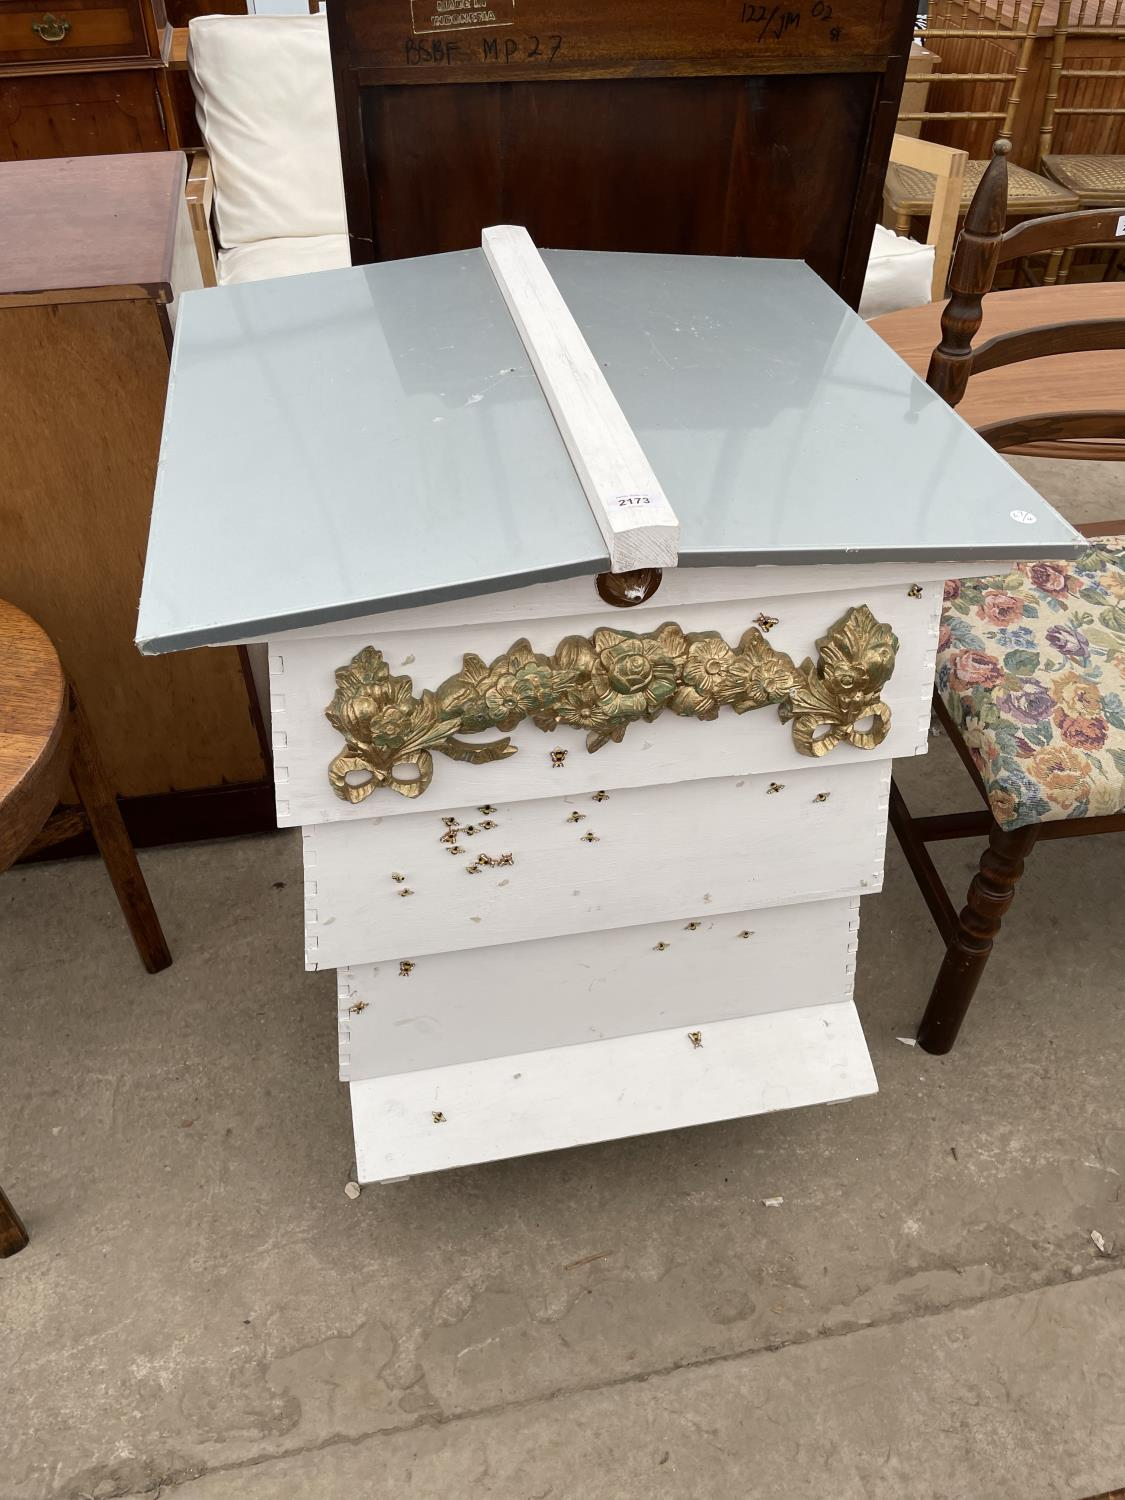 A FOUR TIER WHITE PAINTED FORMER BEEHIVE, DECORATED WITH BEES AND FLOWERS - Image 2 of 4